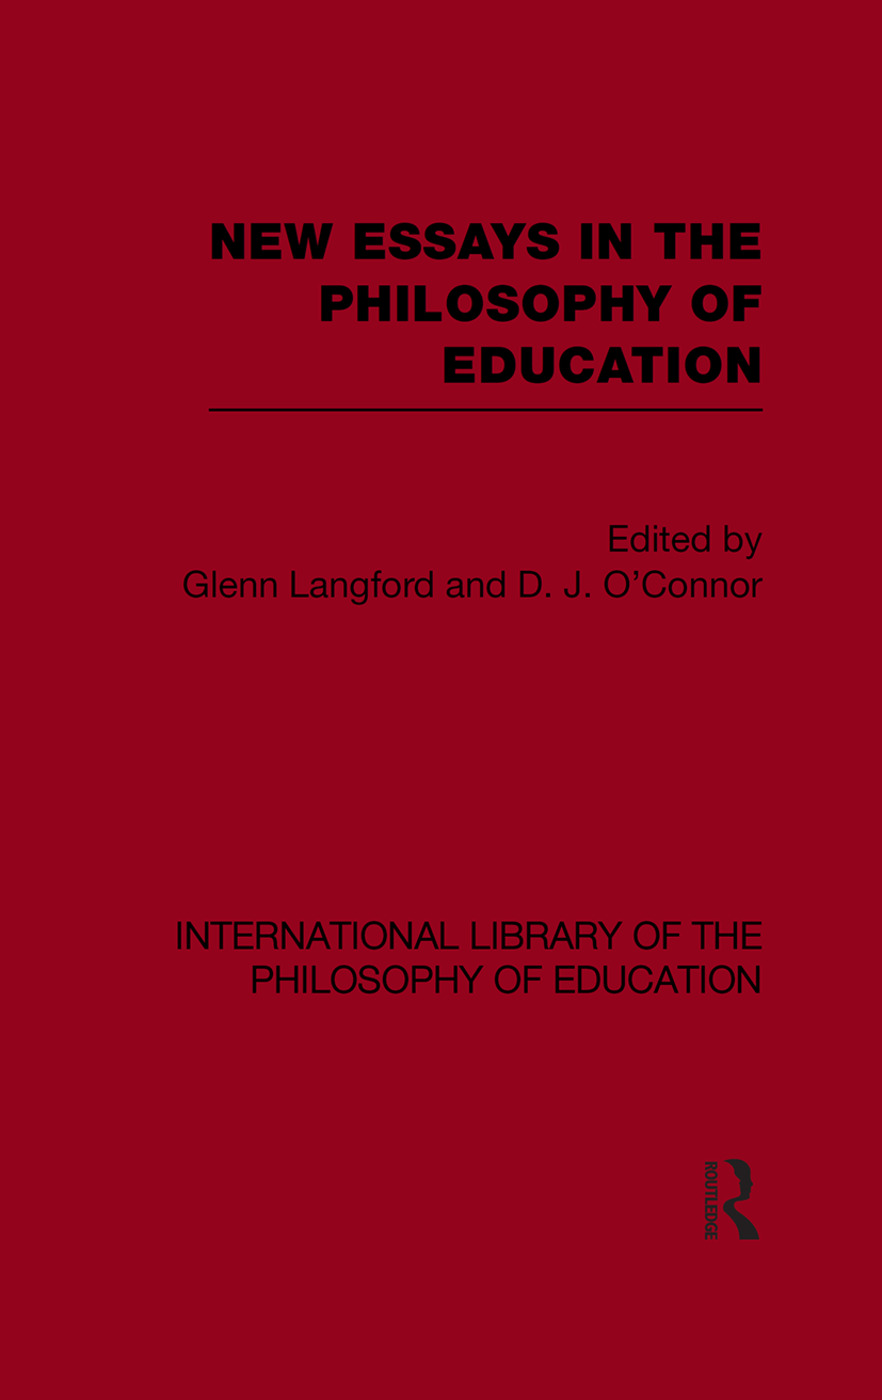 New Essays in the Philosophy of Education (International Library of the Philosophy of Education Volume 13)